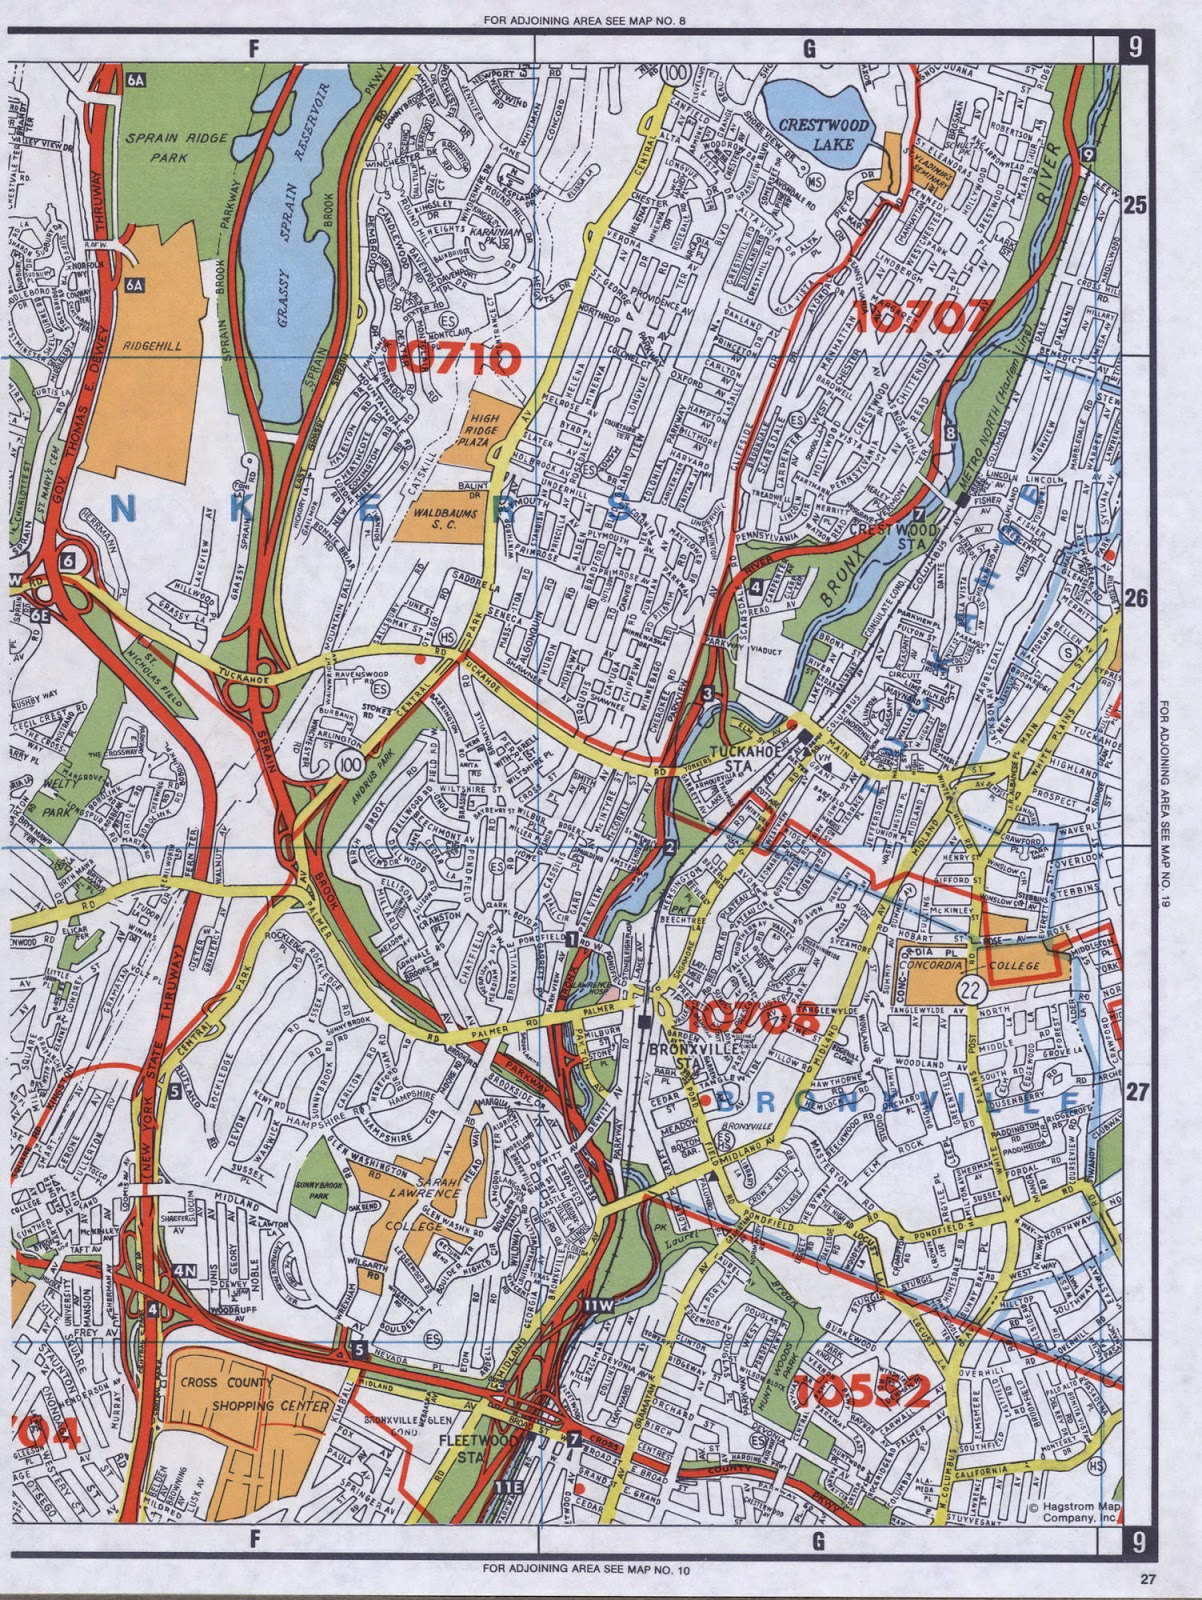 Detailed scanned map of Yonkers New York